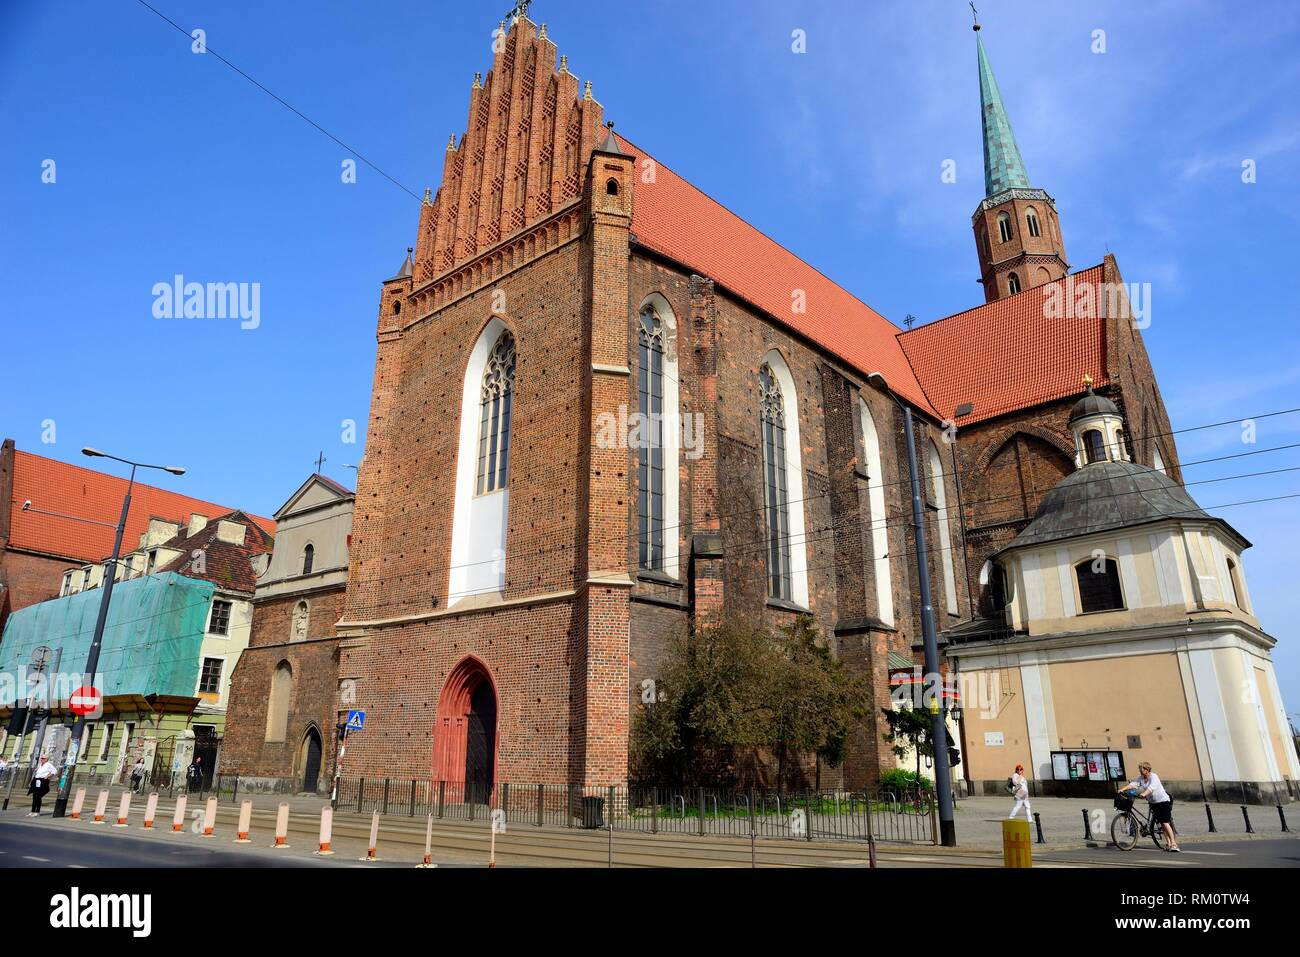 Dominican church of Wroclaw or Breslau, Poland. Stock Photo